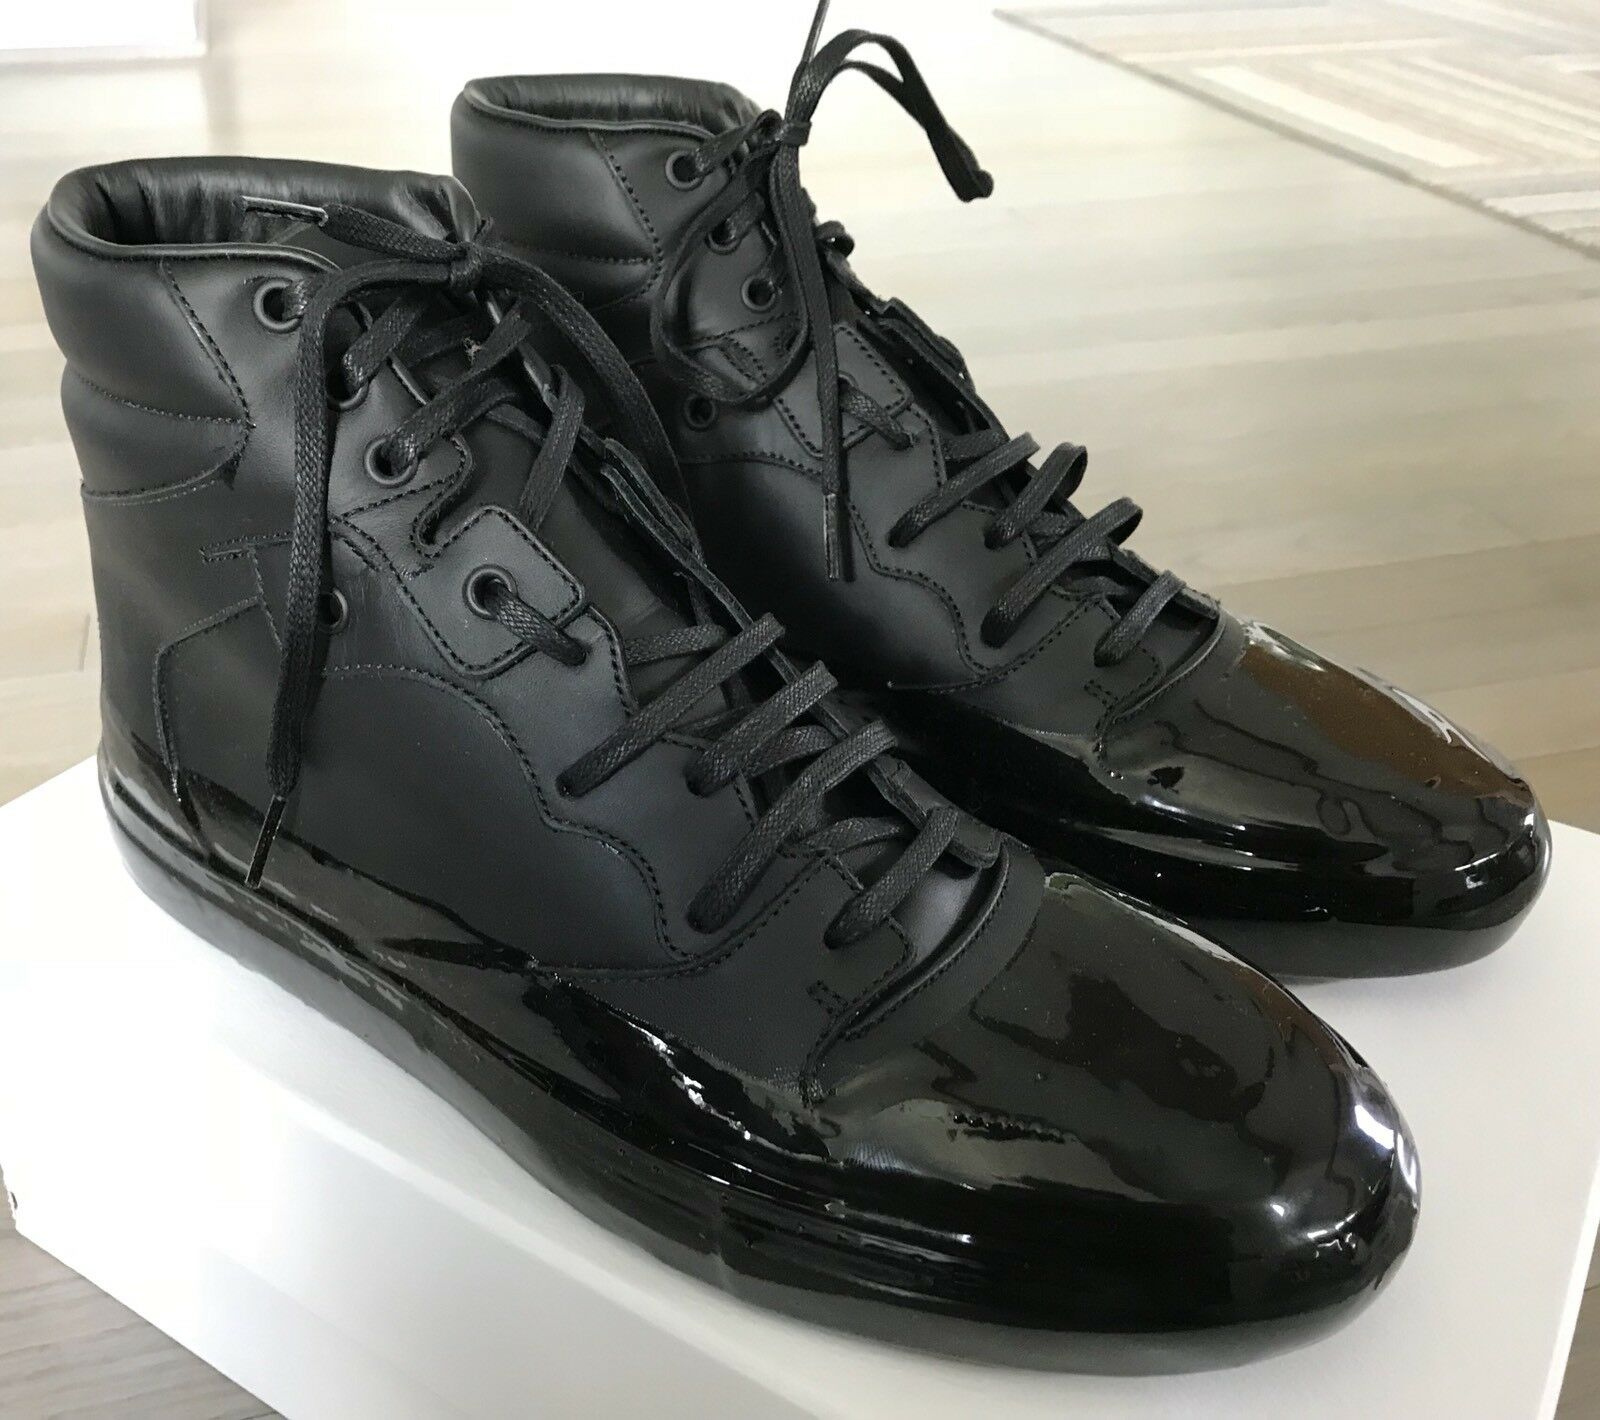 800$ Balenciaga Black High Tops Sneakers size US 12, Made in Italy